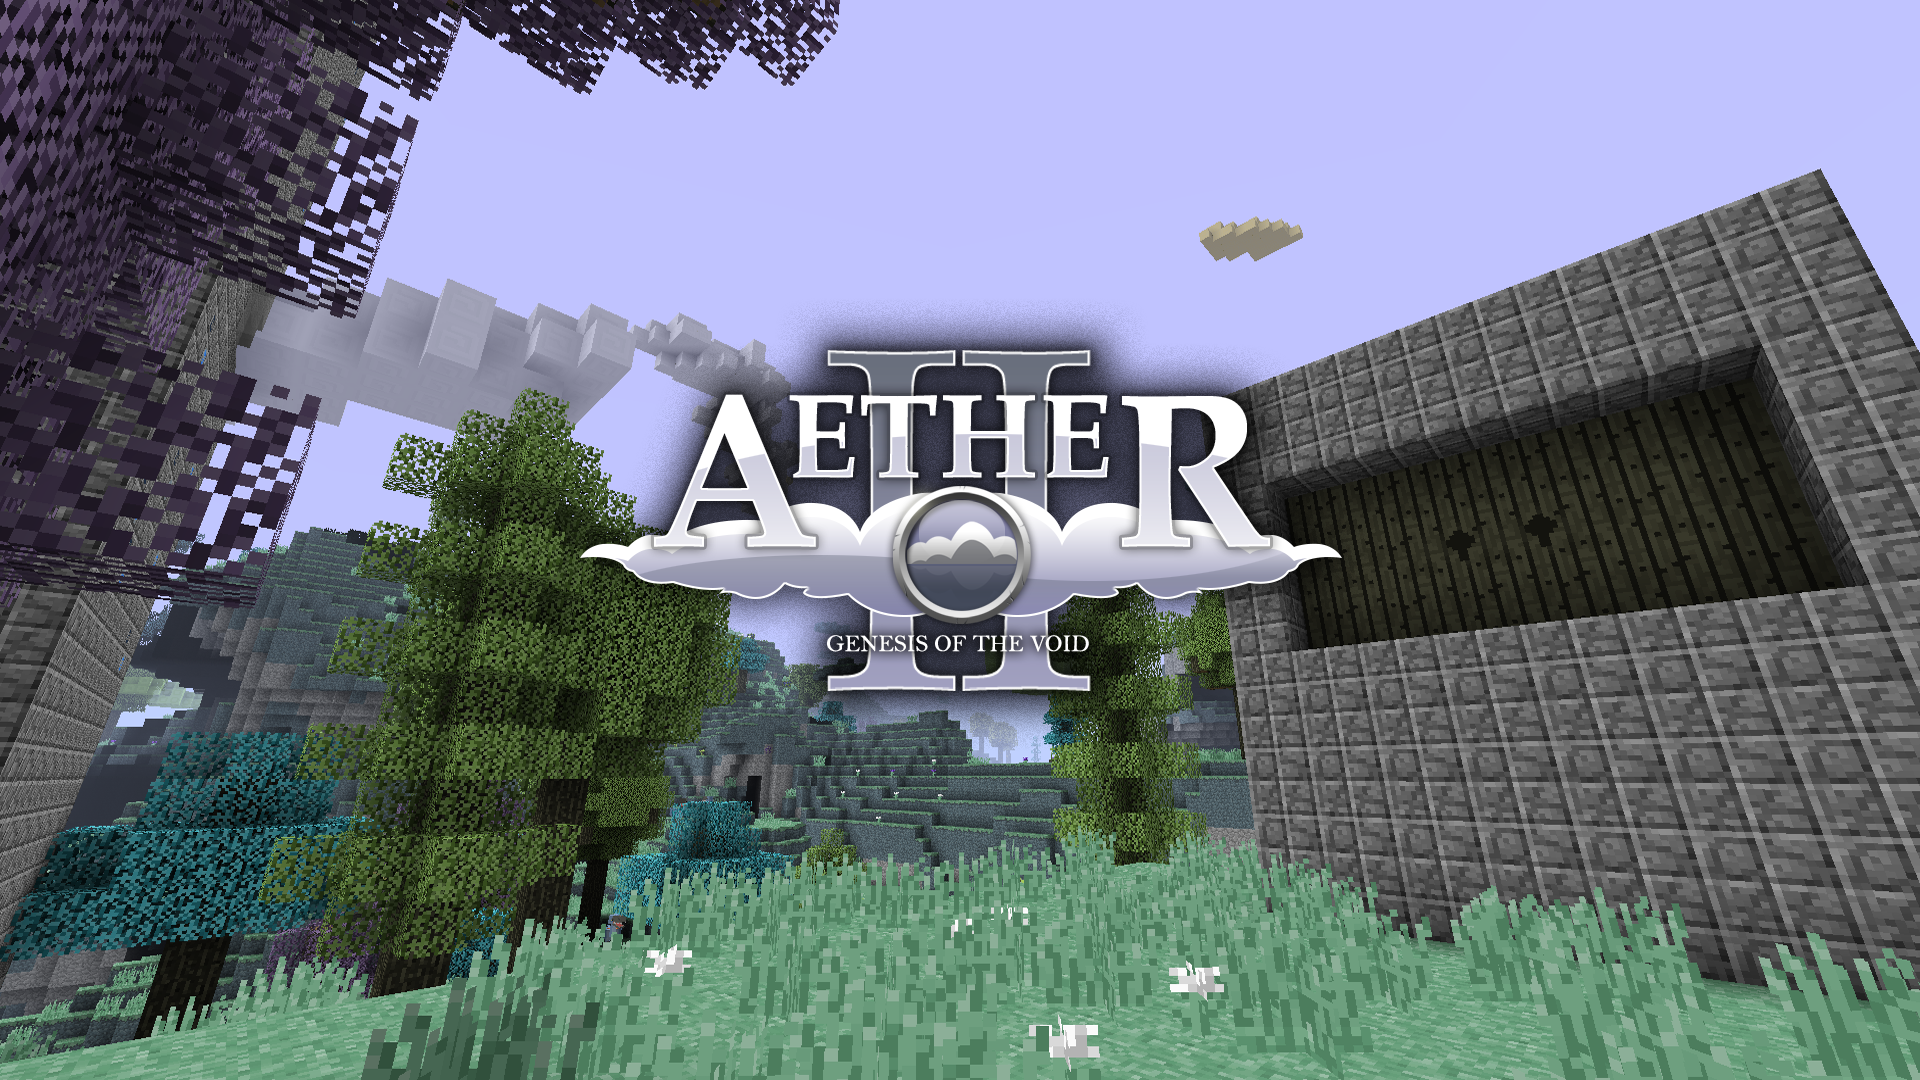 The Aether 2 Wallpaper Image